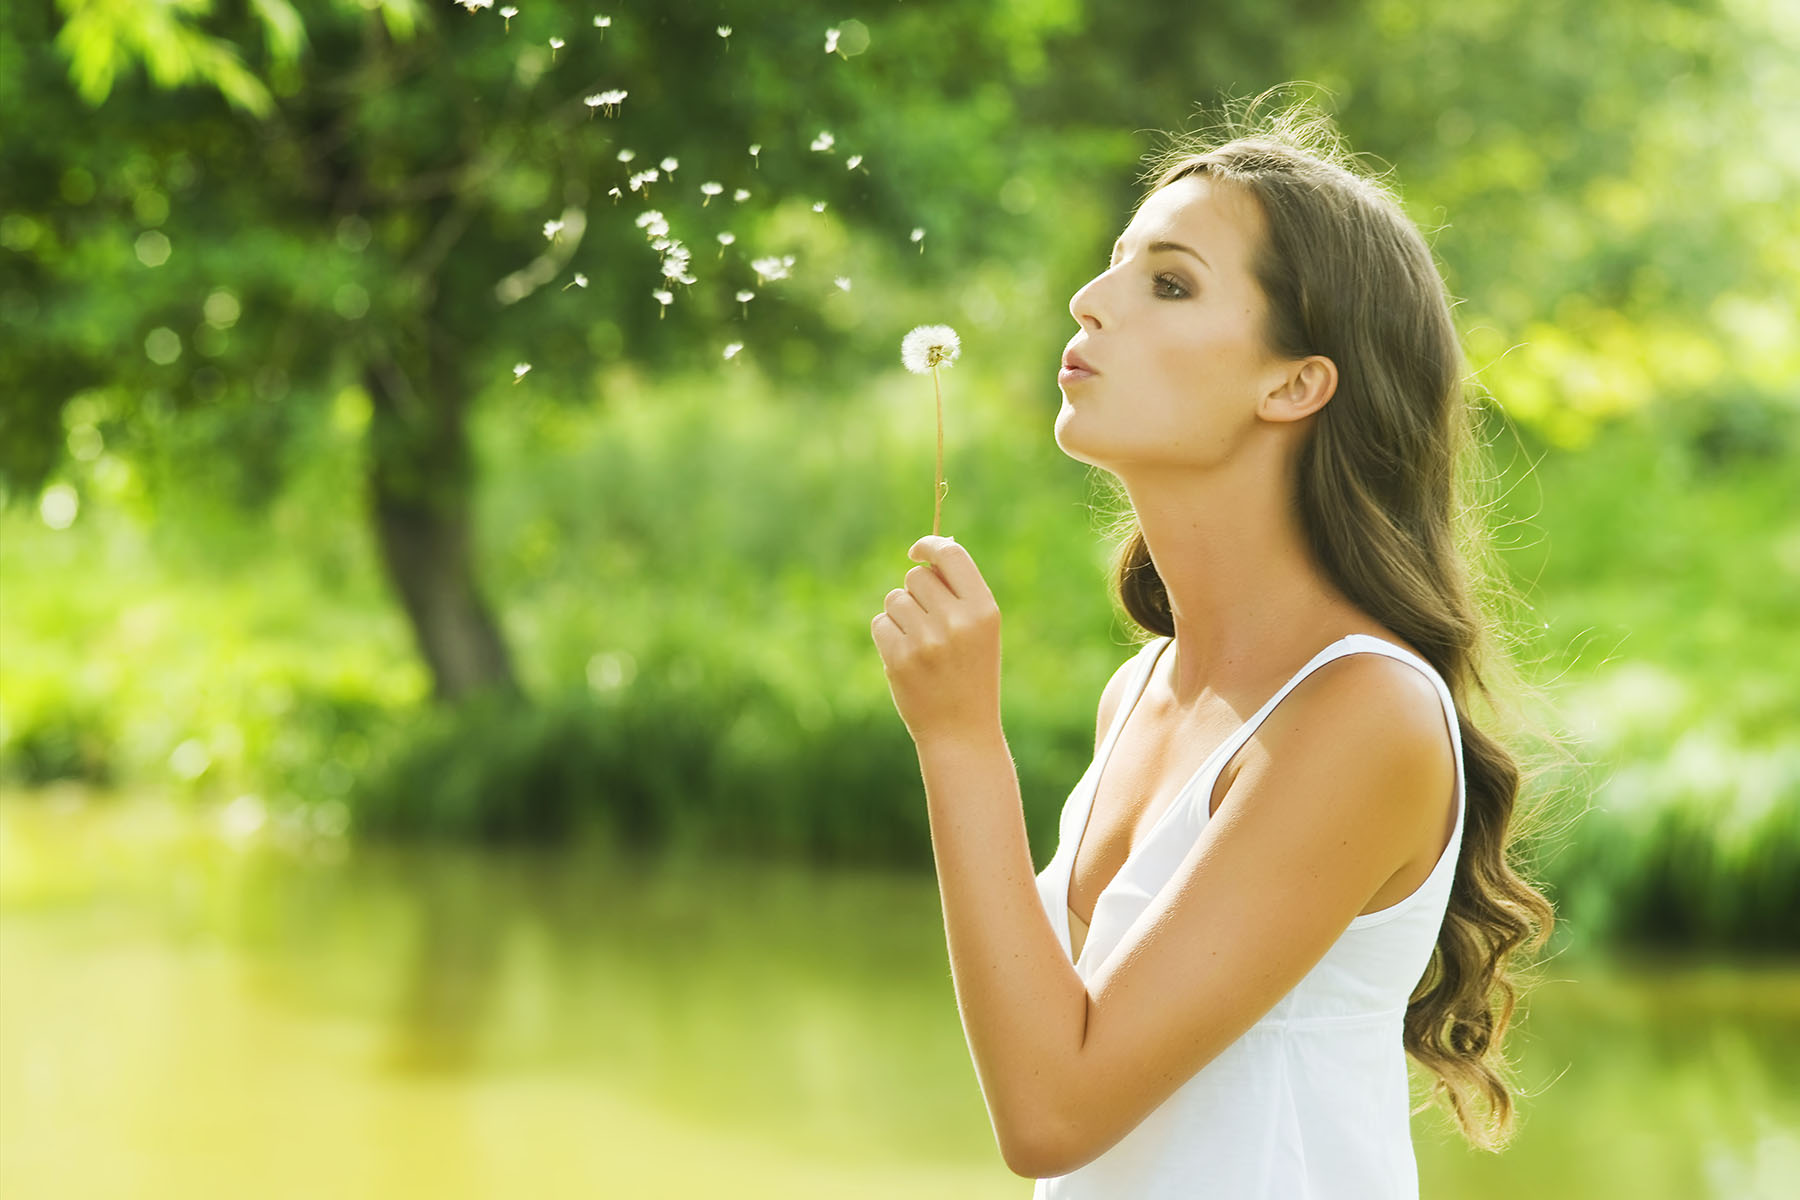 A young woman blowing a dandelion